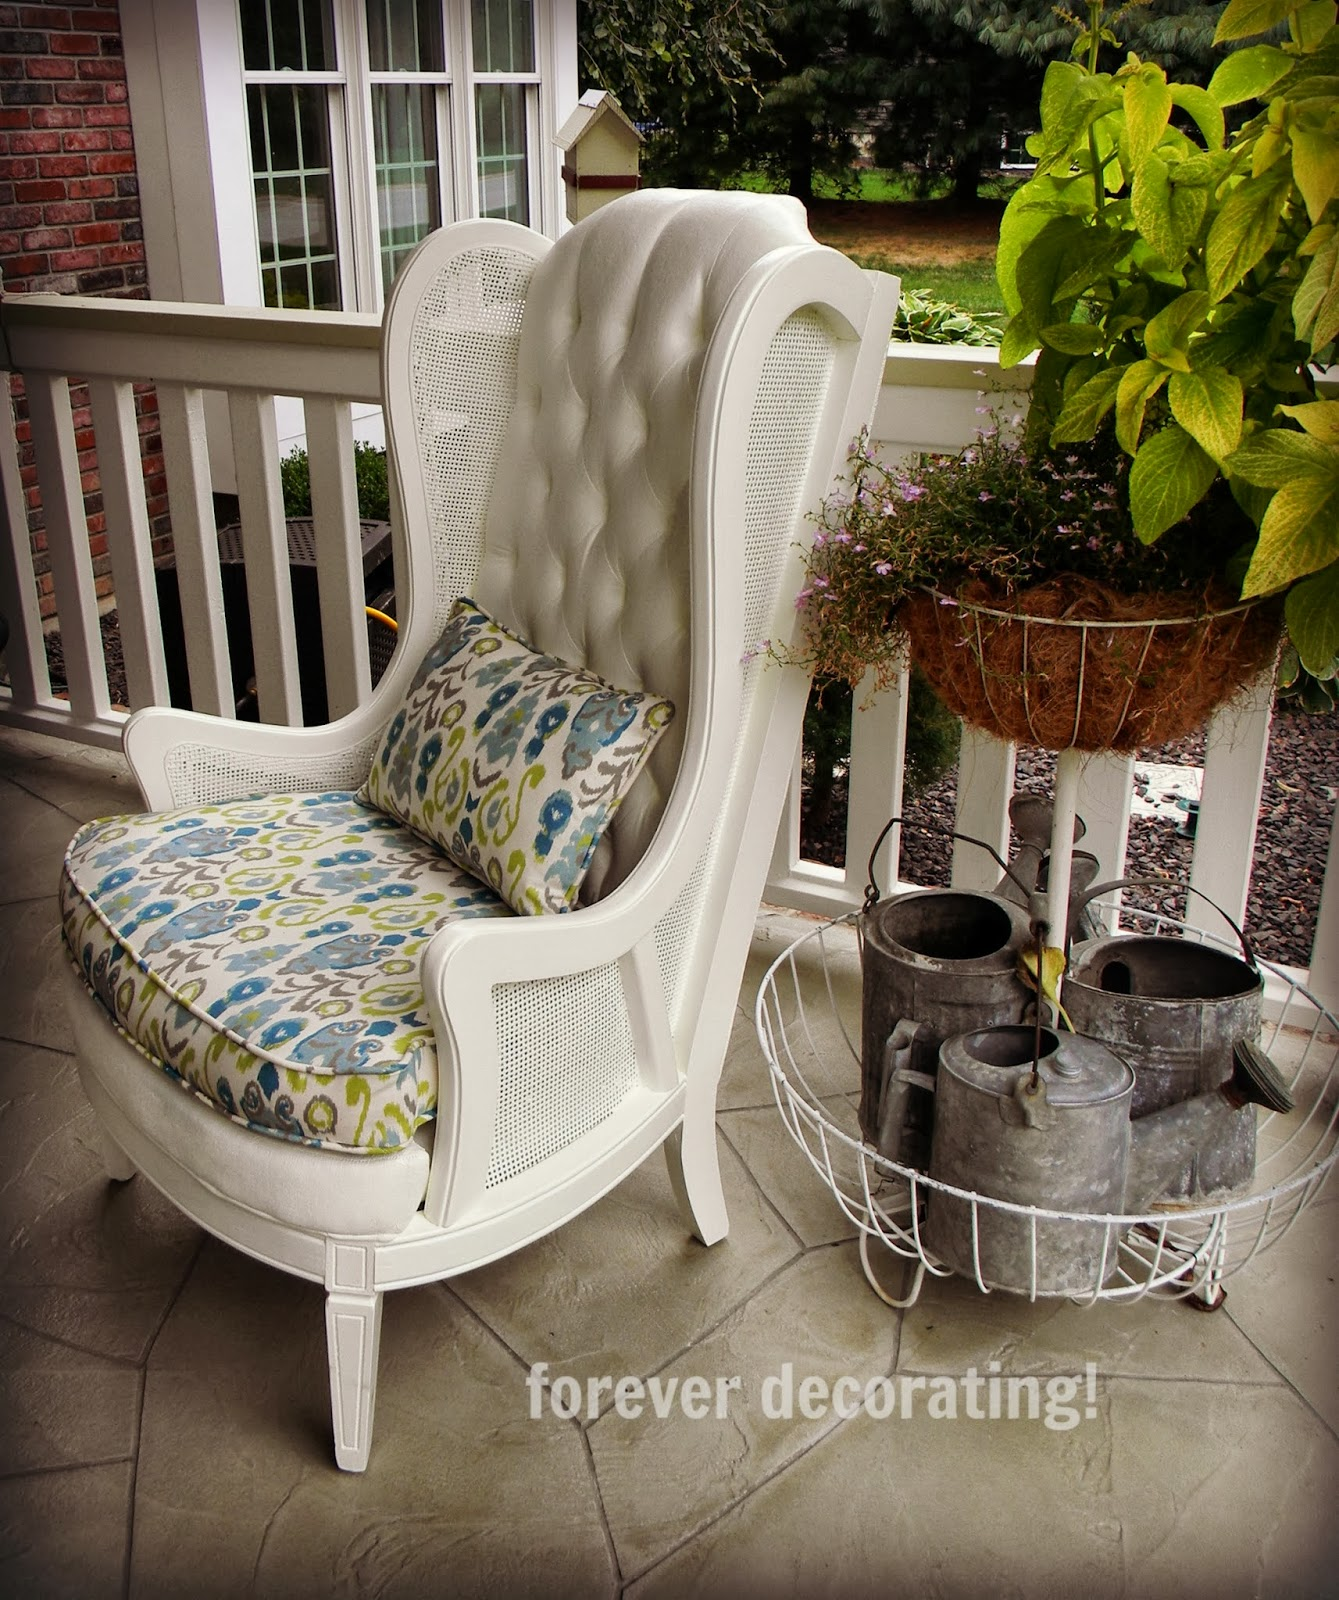 Chair: Forever Decorating!: Charming Painted Upholstered Chair